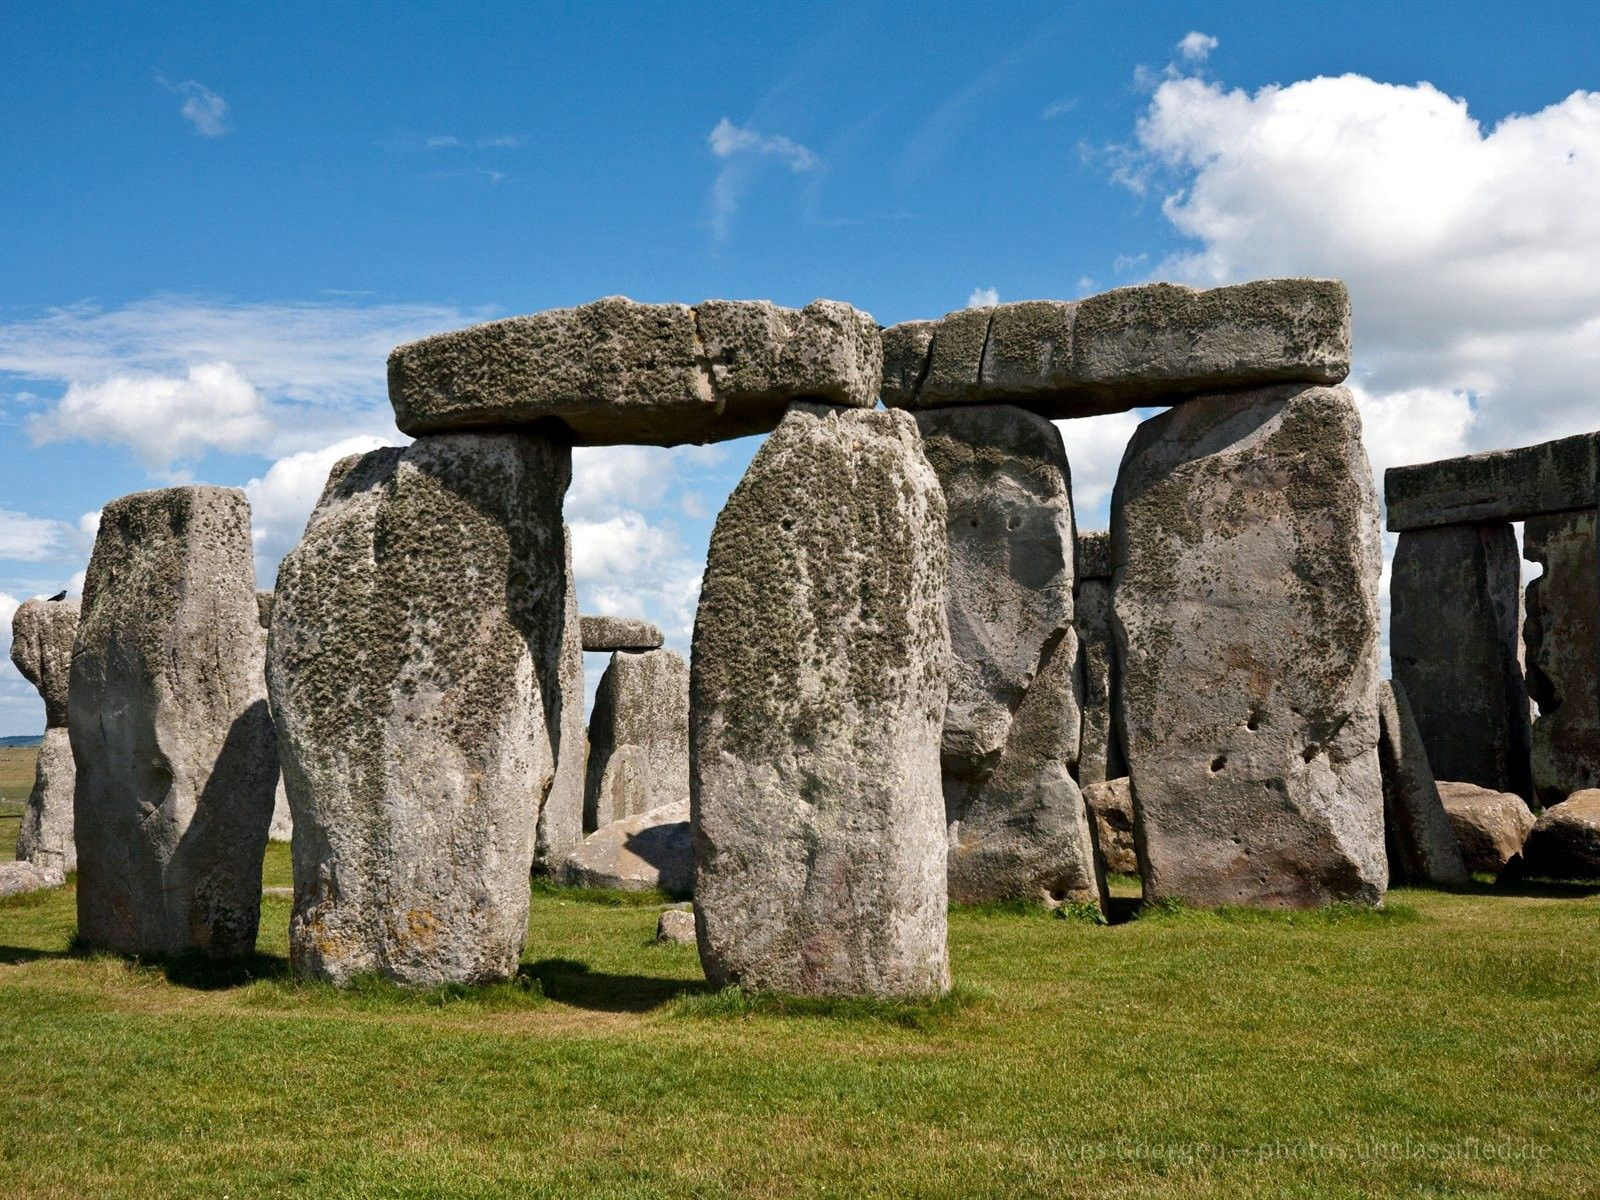 121260 download wallpaper Nature, Stonehenge, Stones, Grass, Sky screensavers and pictures for free